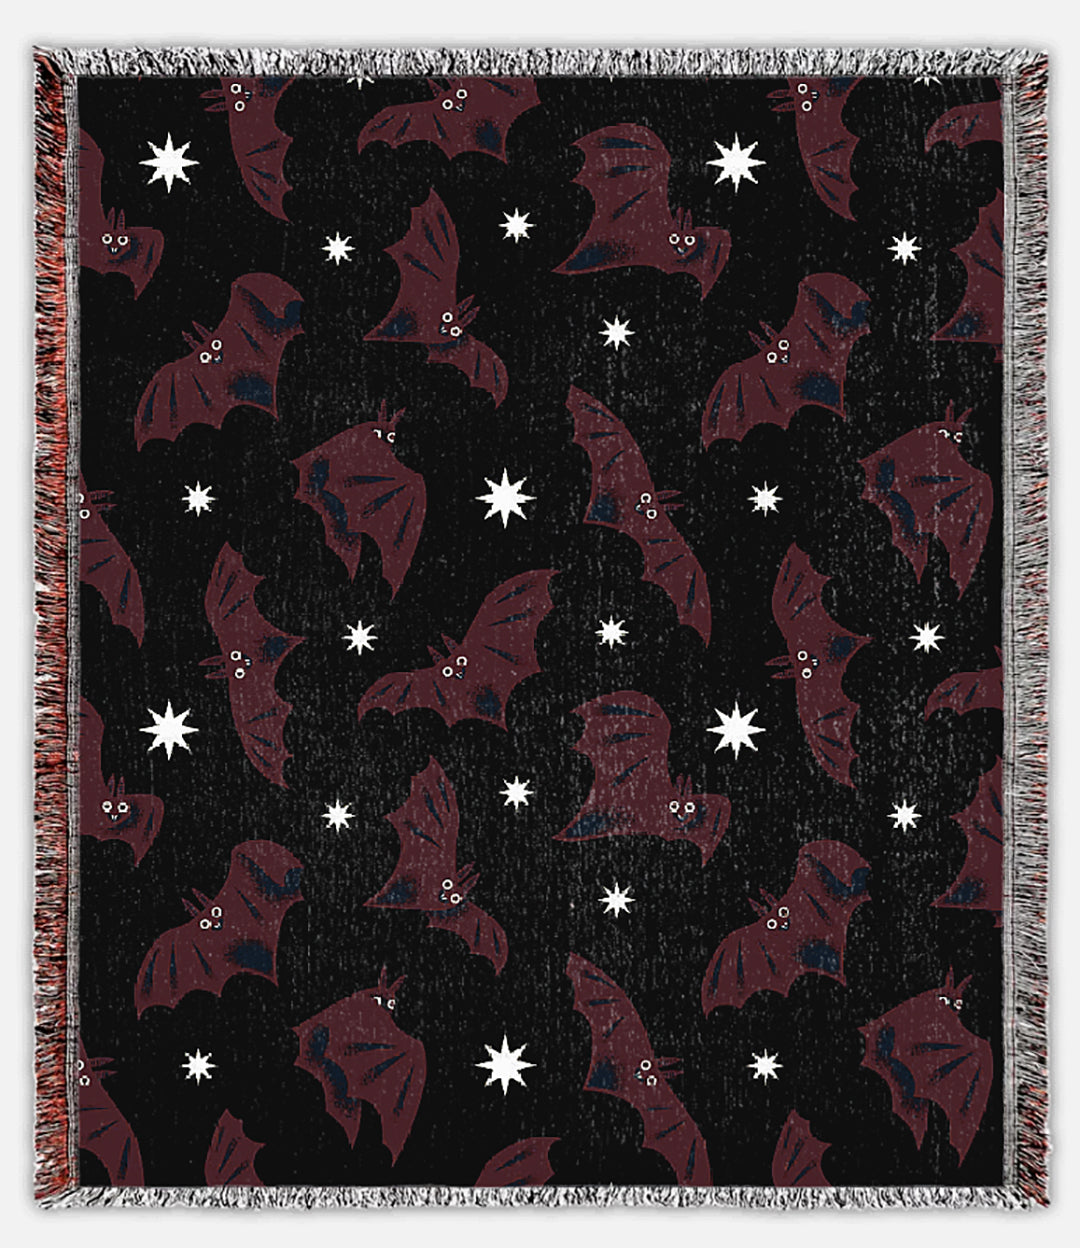 Bat Dance Blanket